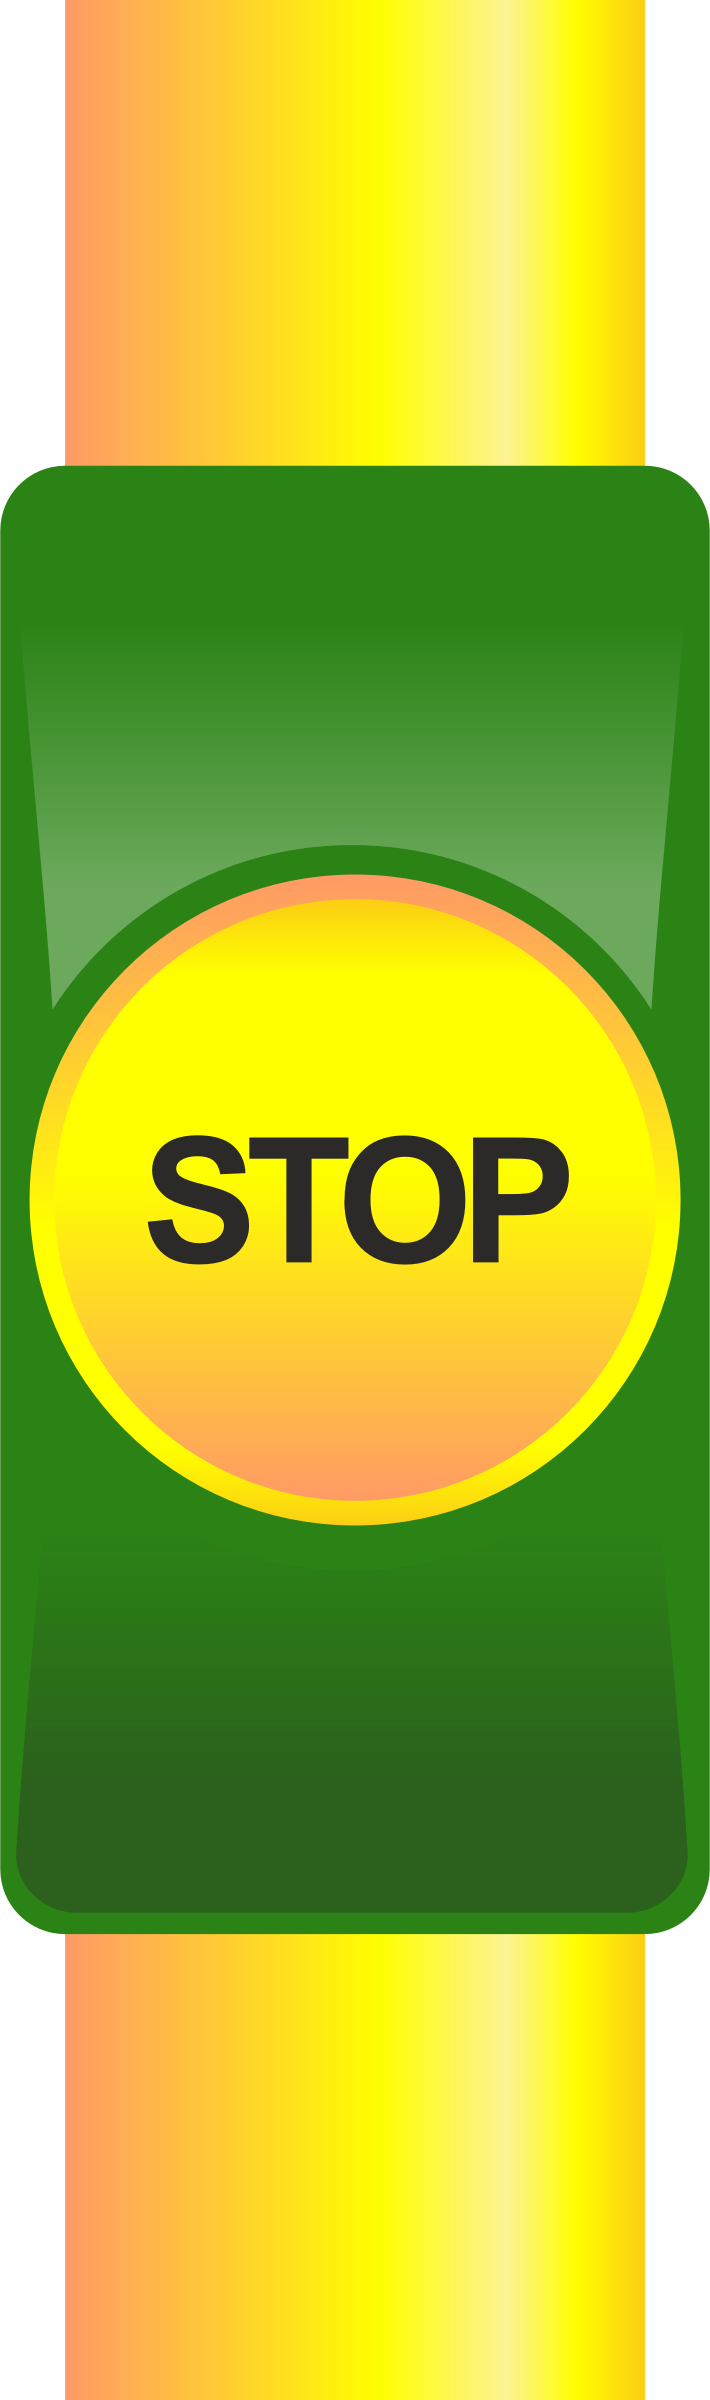 Public transport stop button by pnx